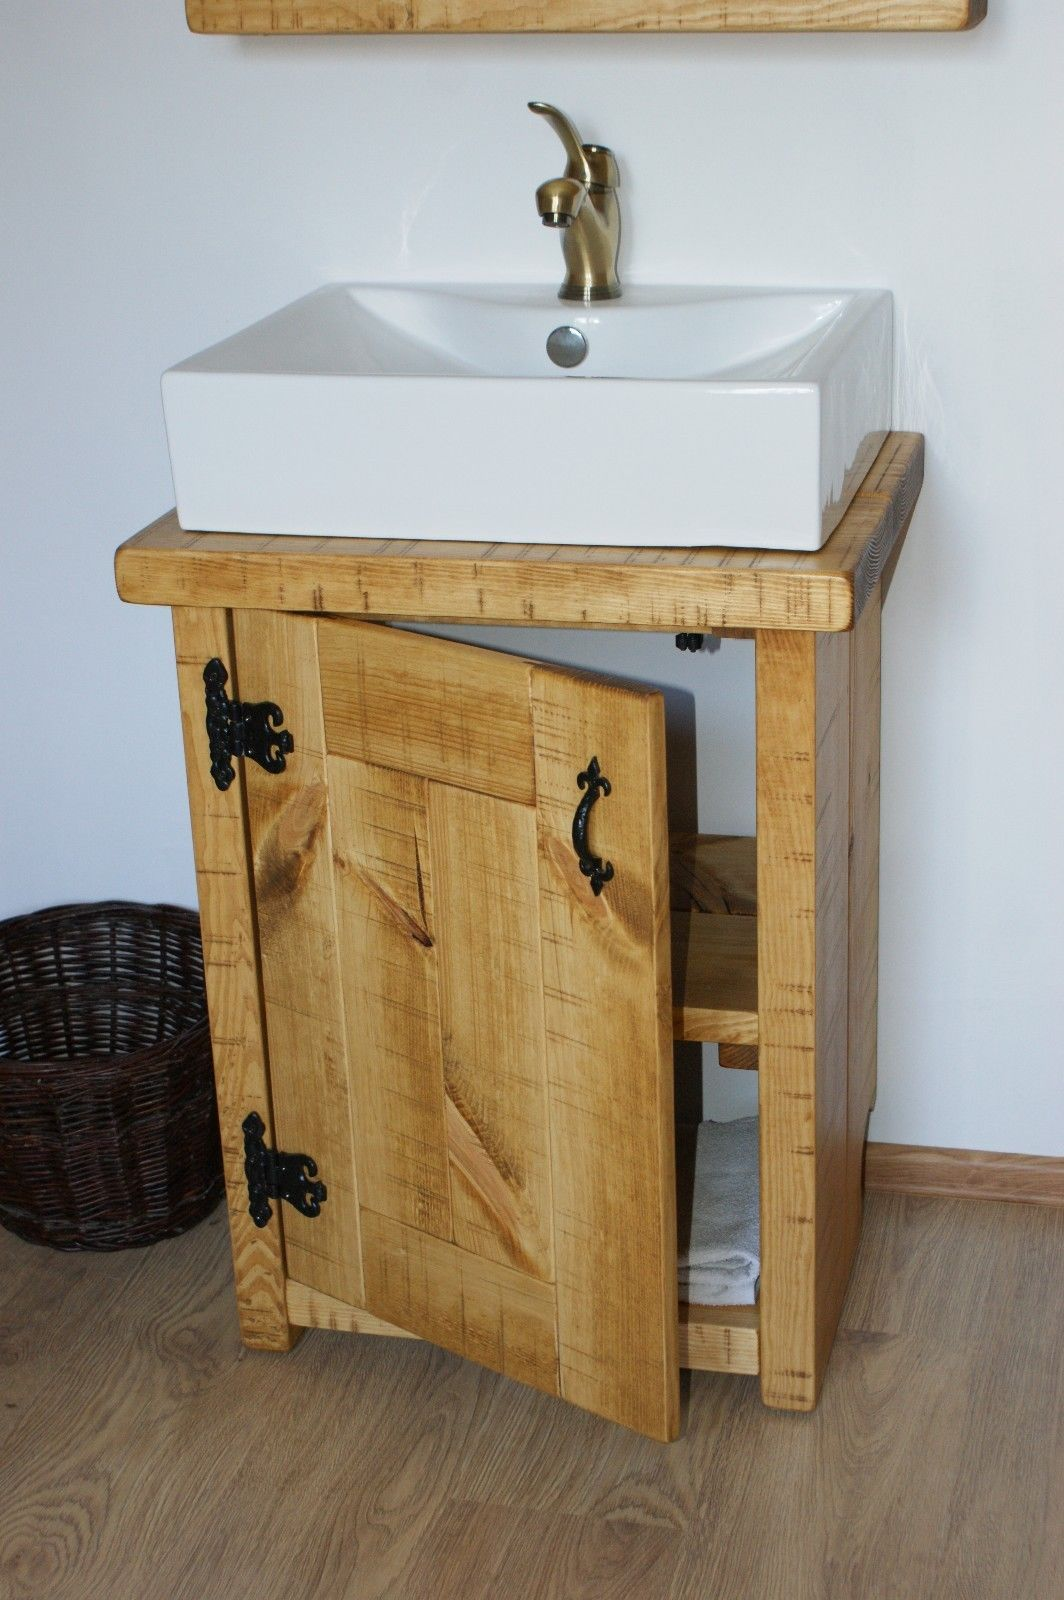 New Chunky Rustic Solid Wood Bathroom Basin Sink Vanity Wash Stand Unit